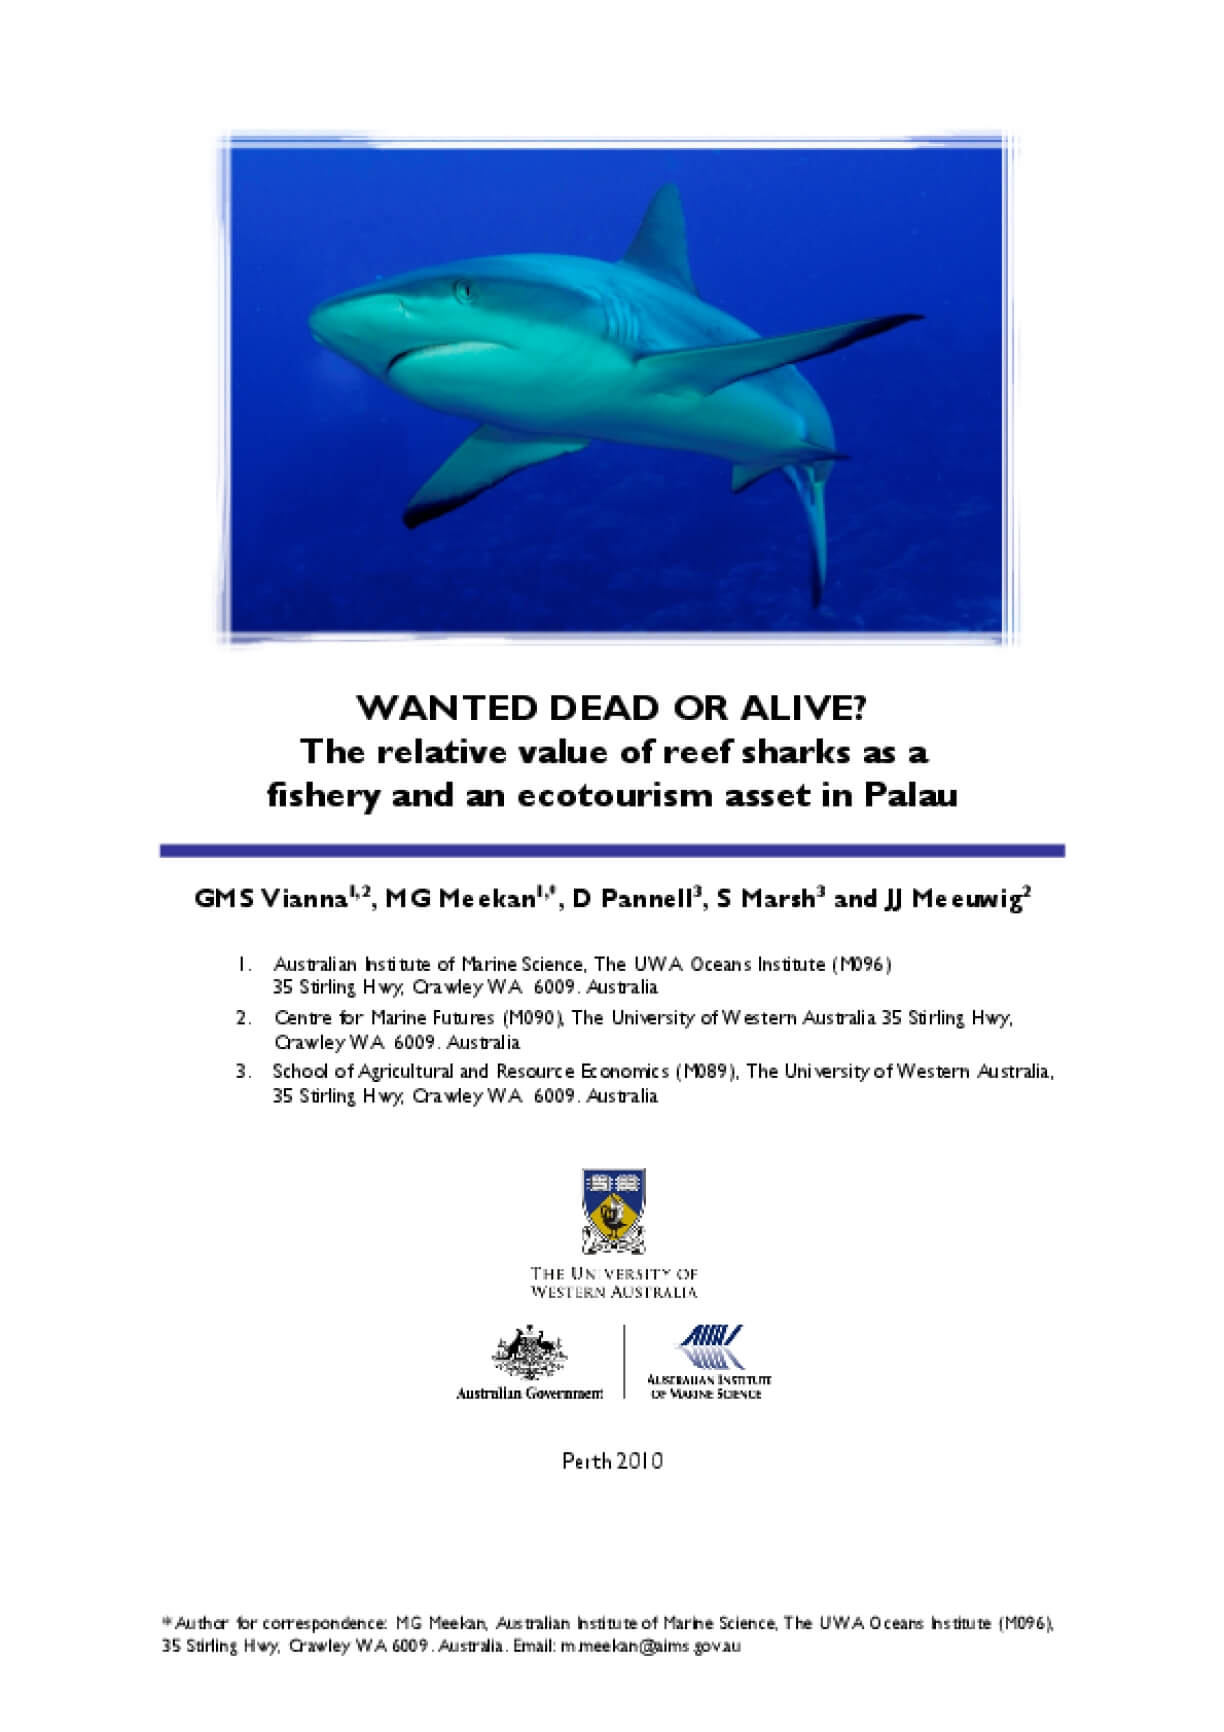 Wanted Dead or Alive? The Relative Value of Reef Sharks as a Fishery and an Ecotourism Asset in Palau